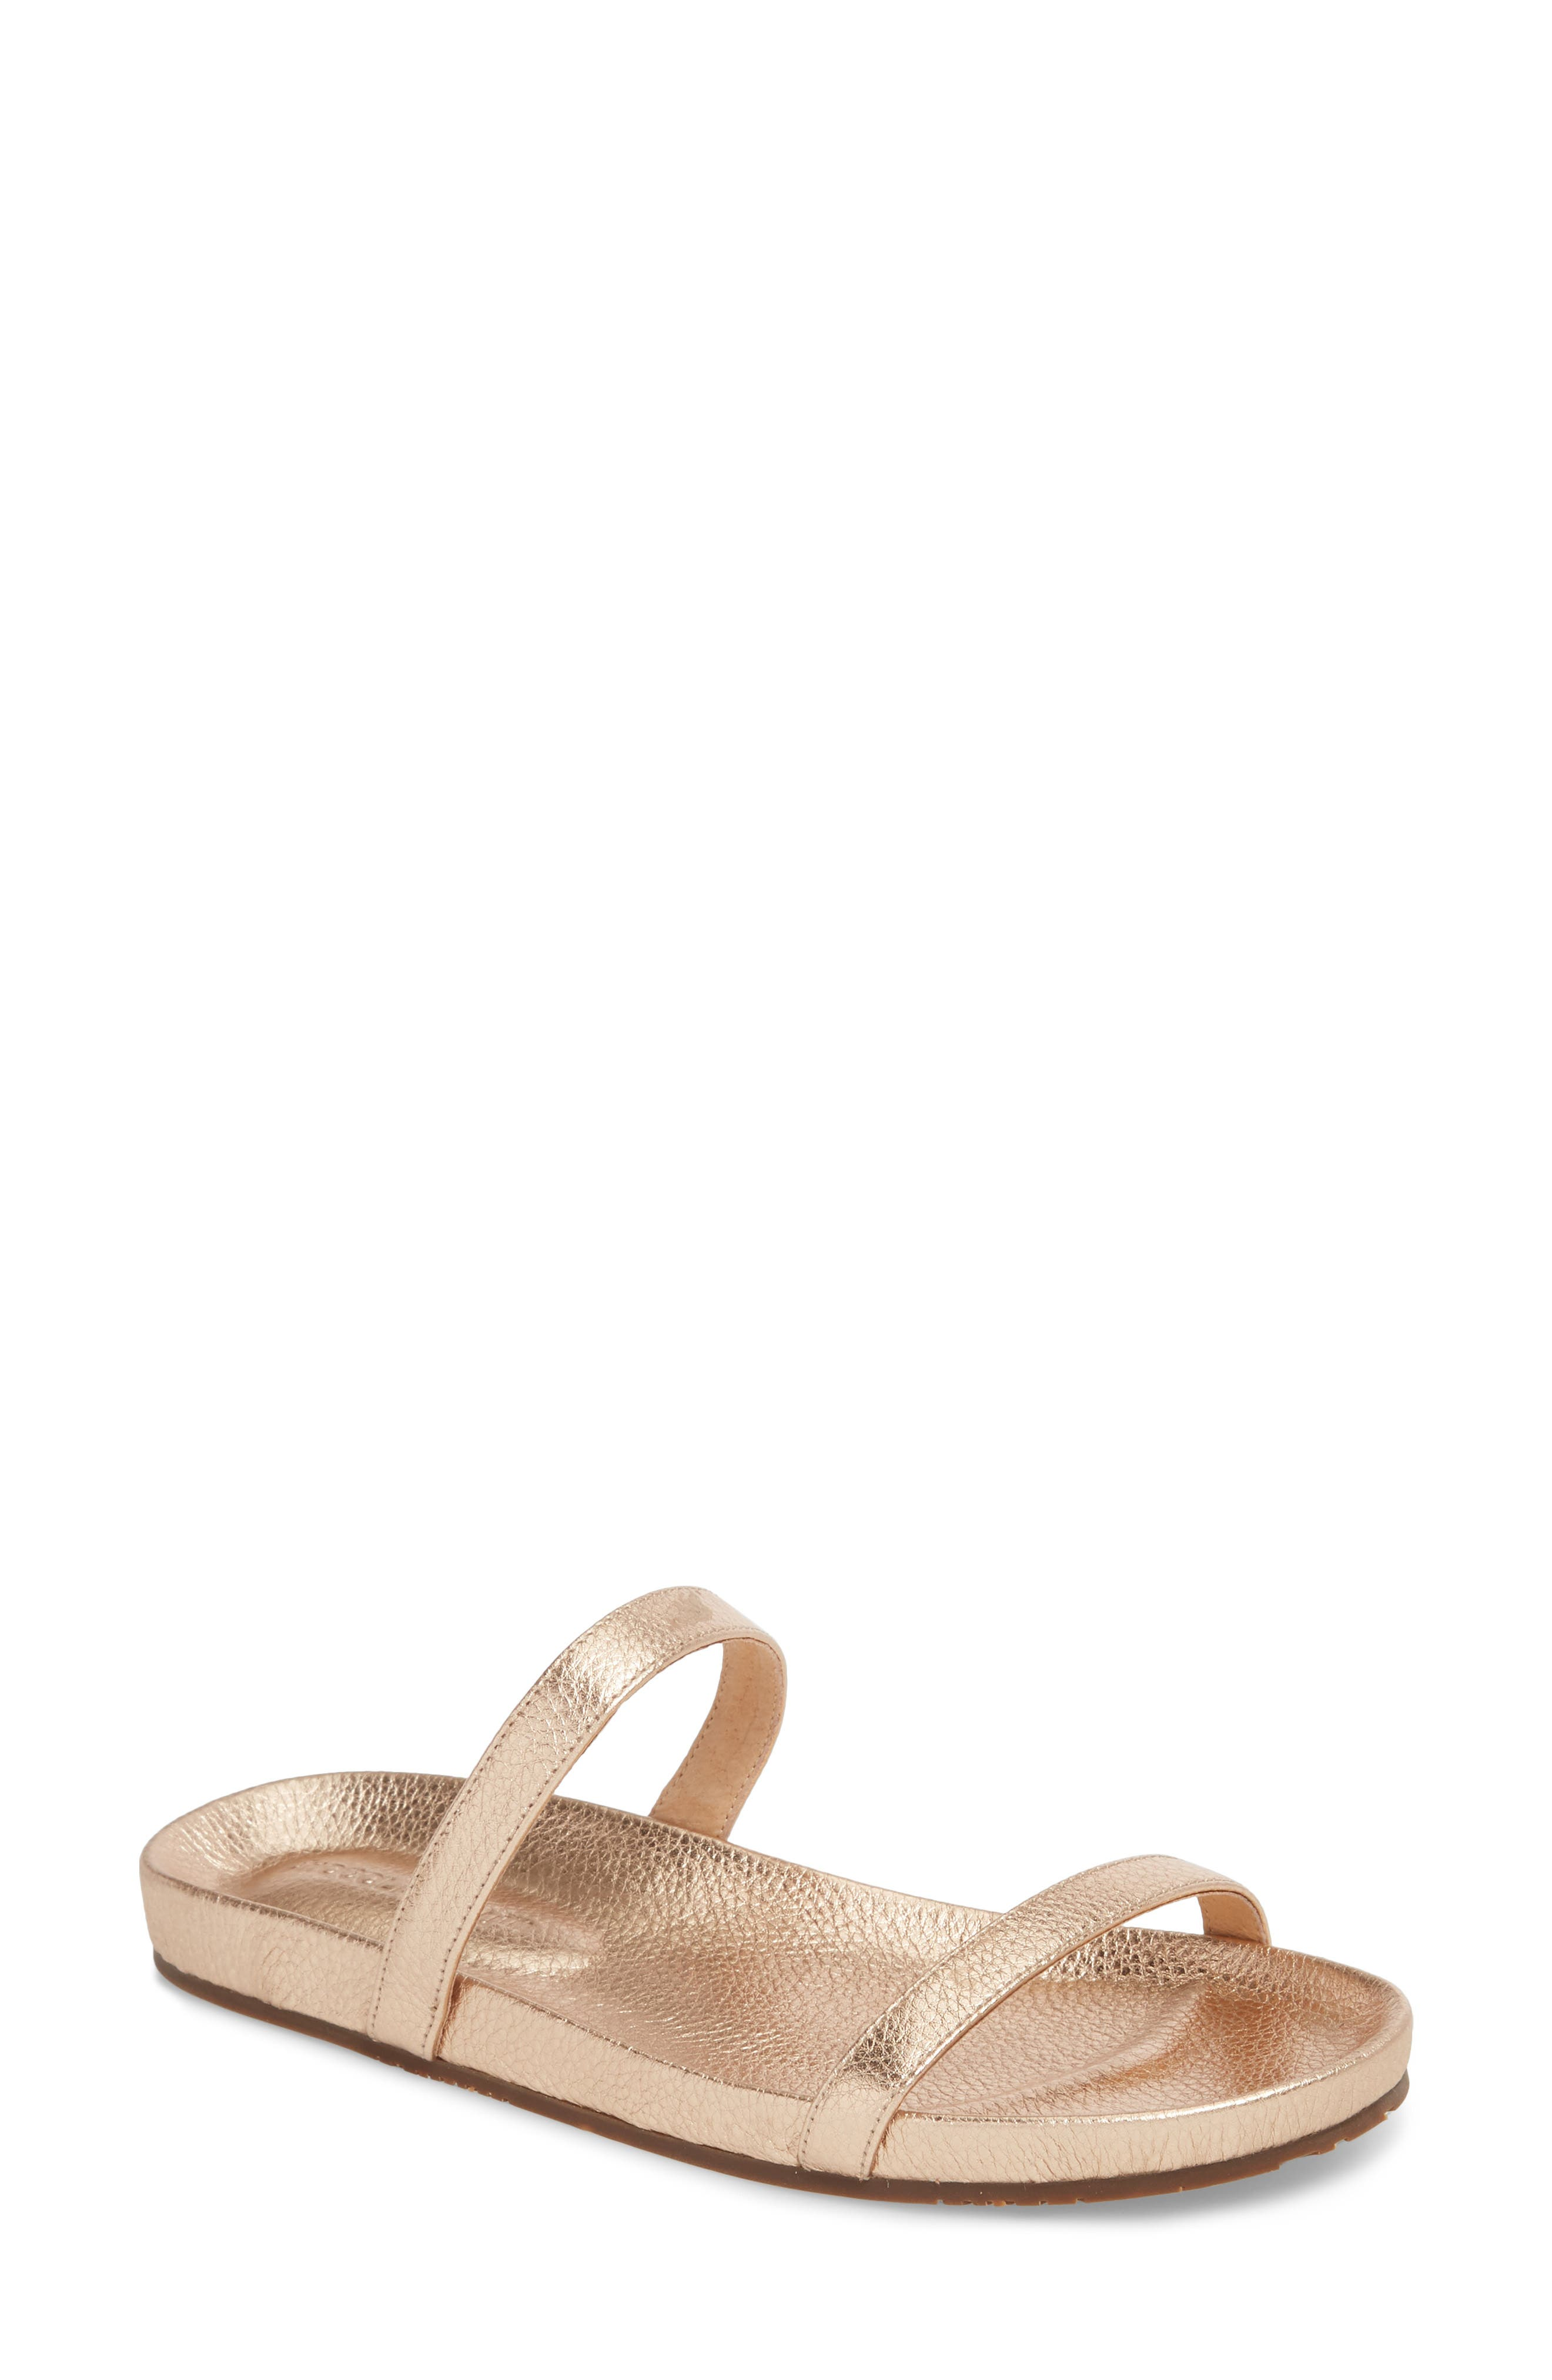 Yale Two-Strap Sandal,                         Main,                         color, Rose Gold Leather